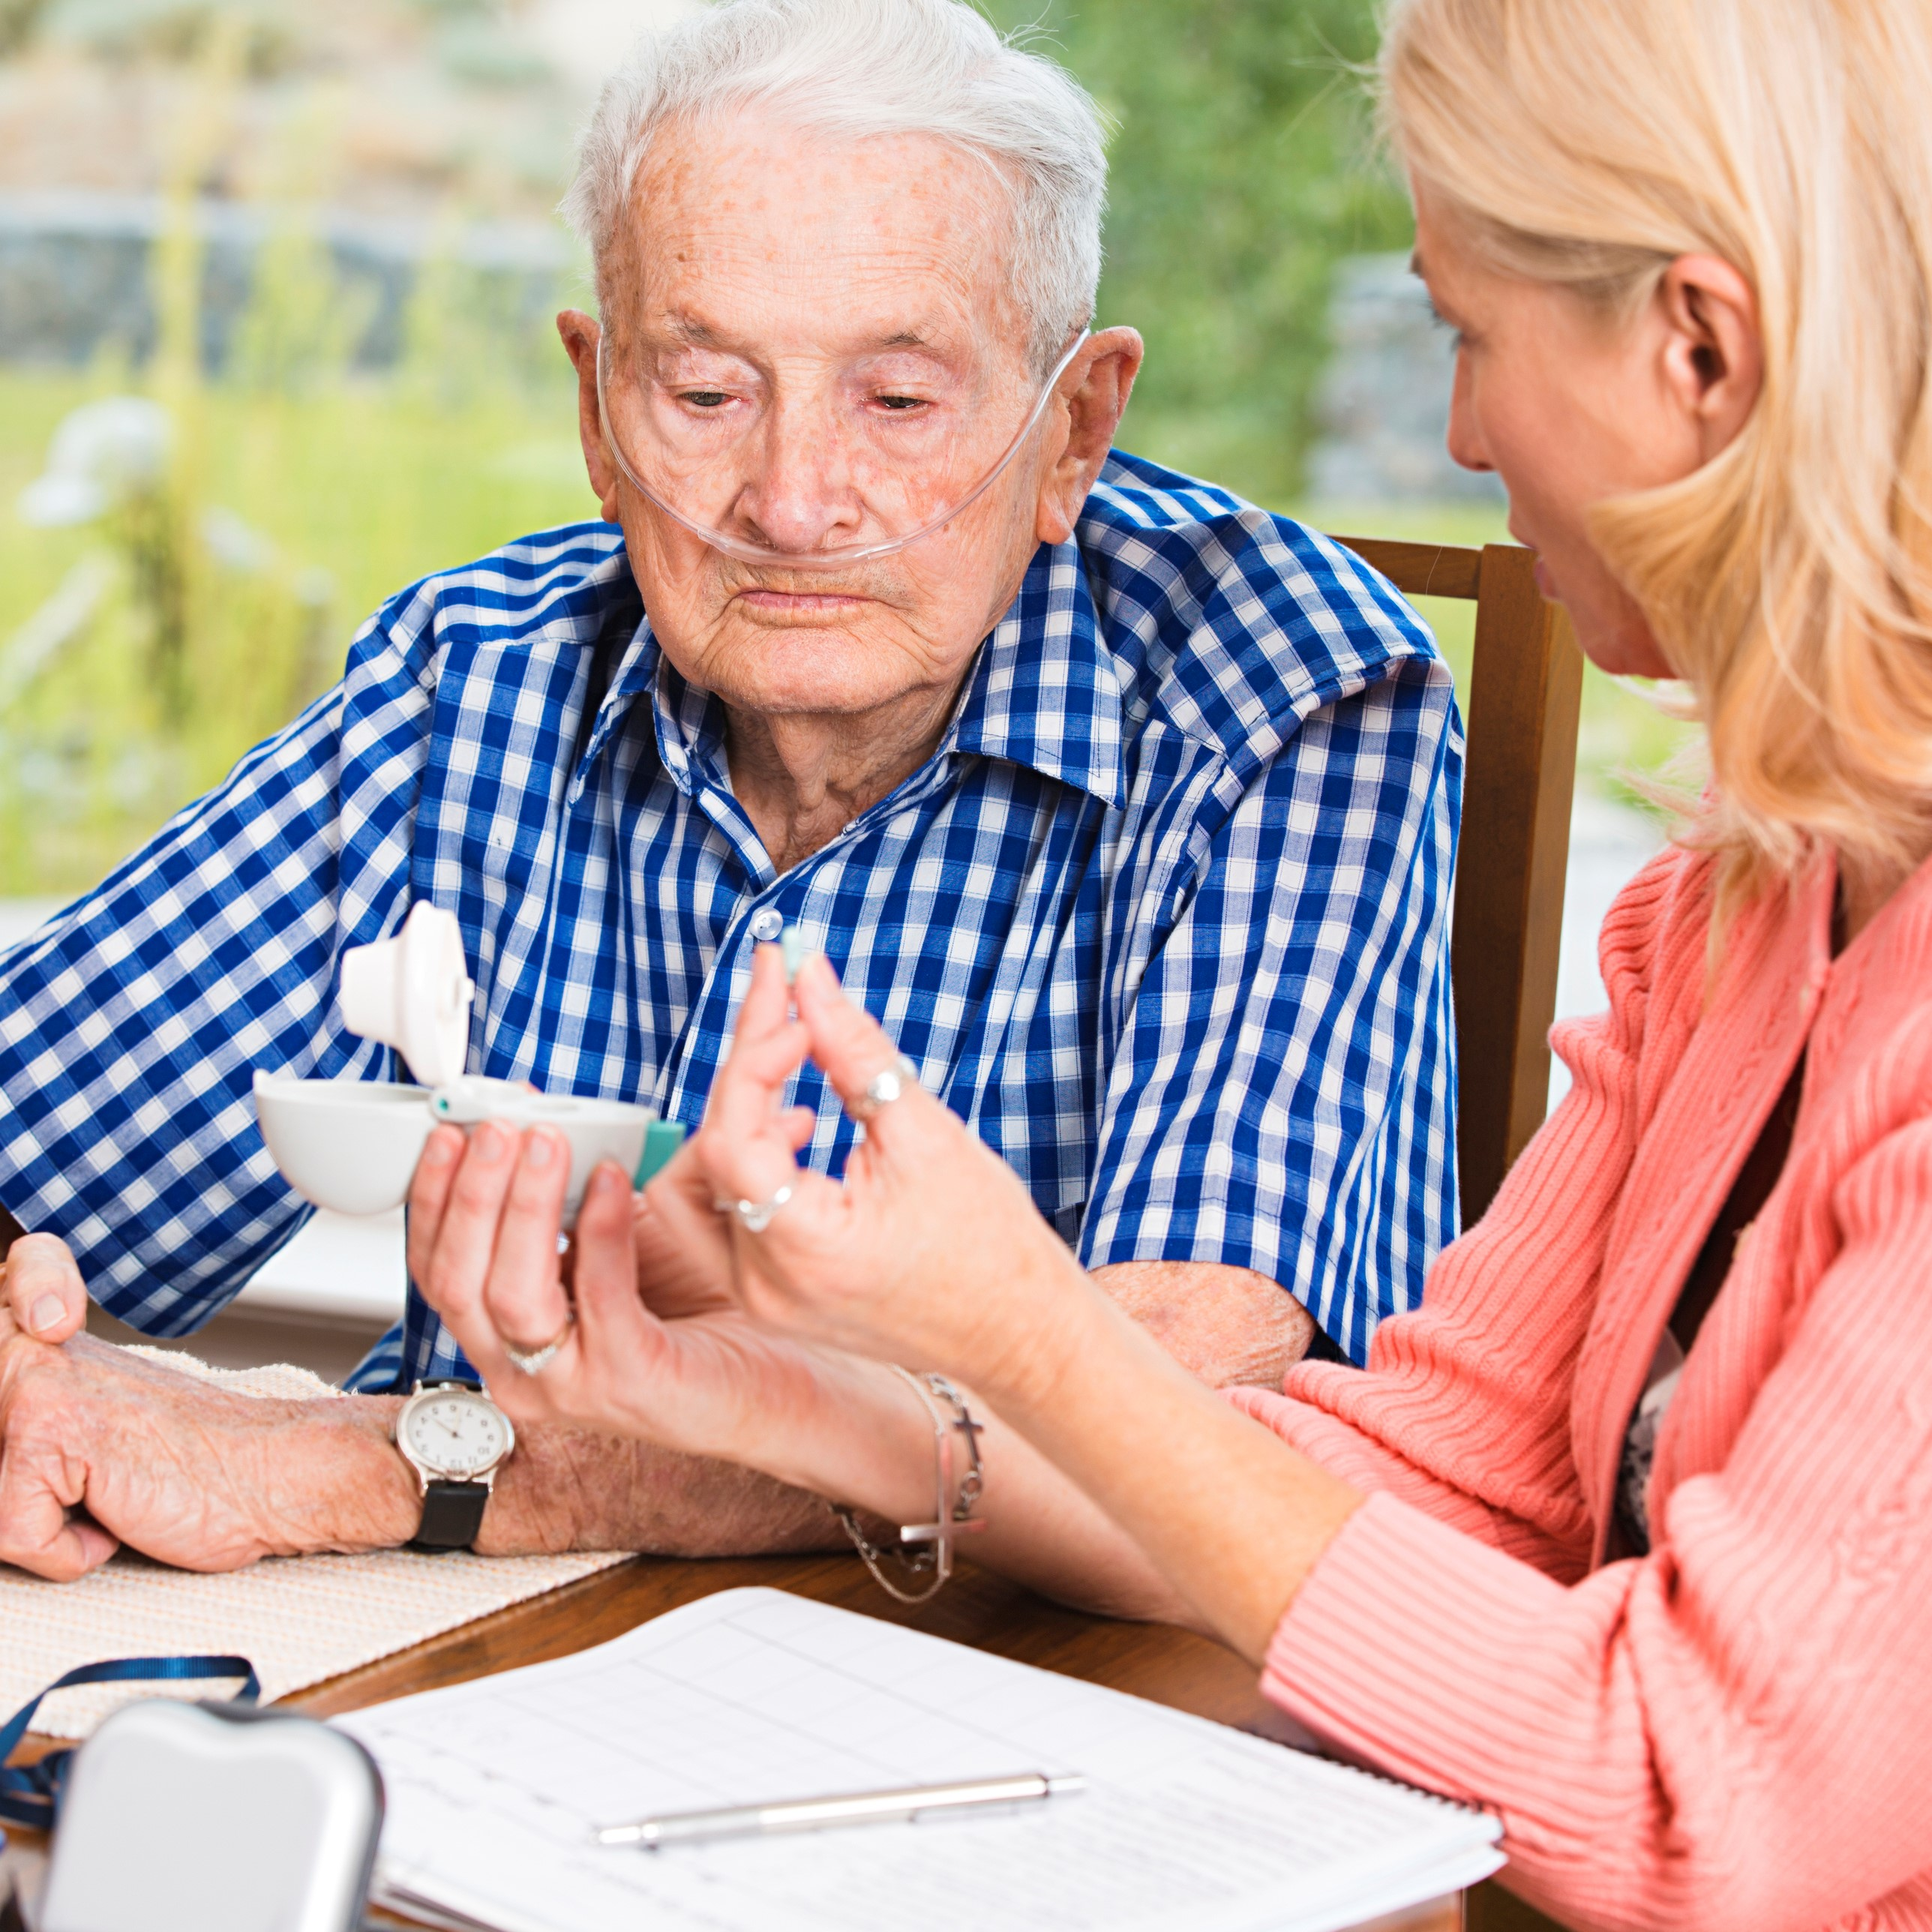 Elderly man sits at a table with a woman. She is showing him the details of his medication.